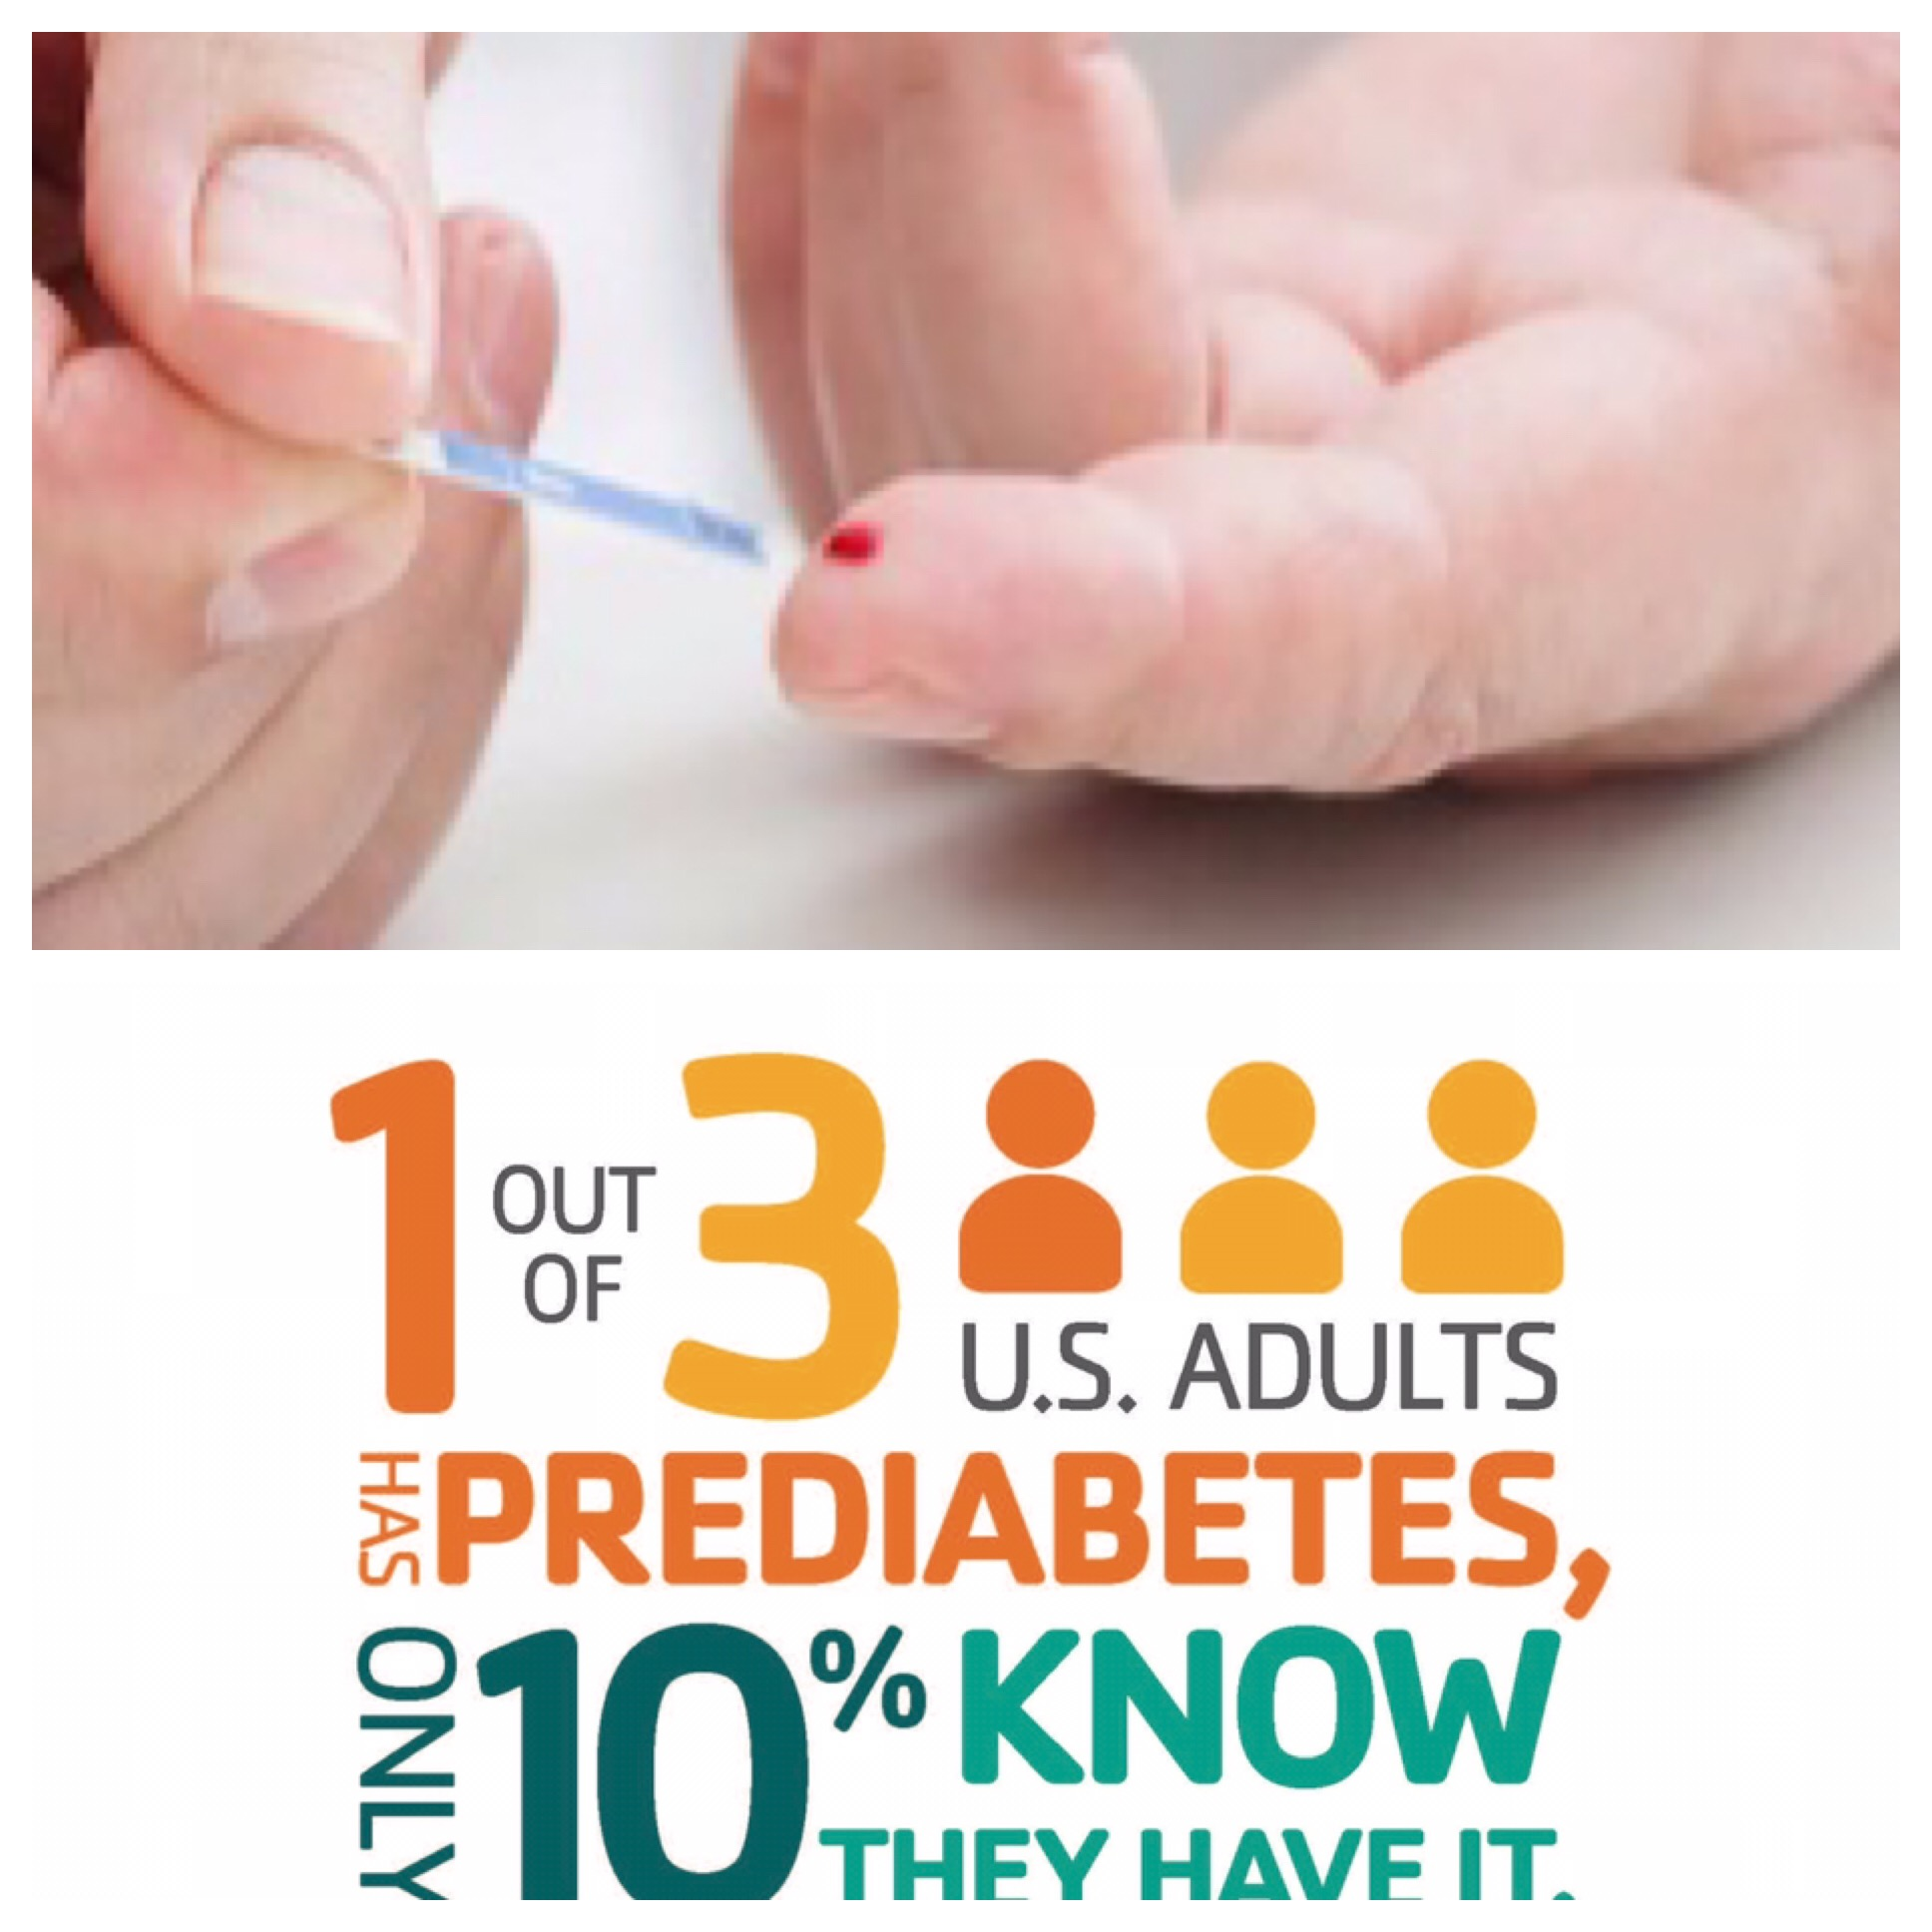 Use 3/26 Diabetes Alert Day Resources To Jumpstart Your Diabetes Management & Cost Containment Efforts